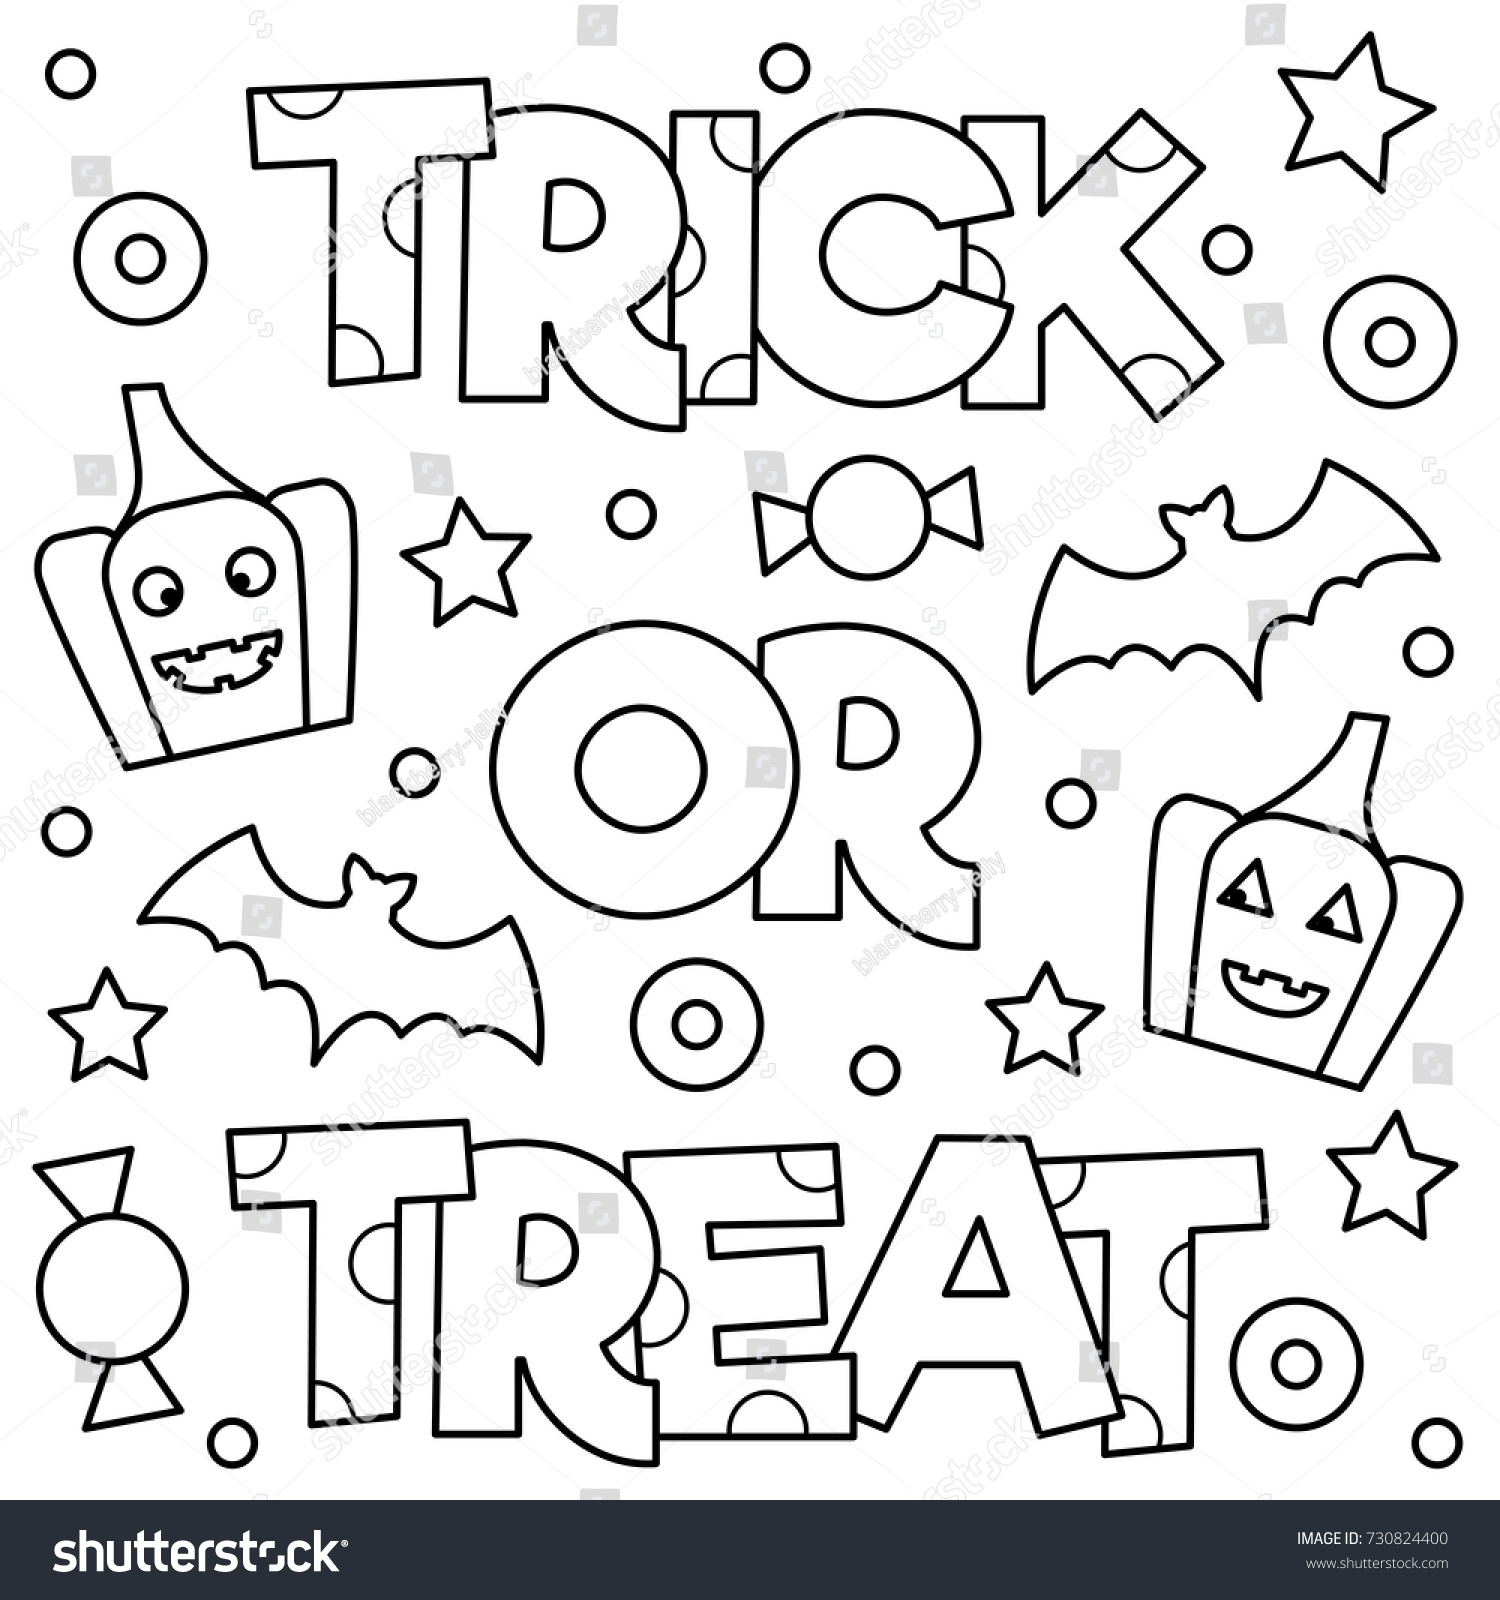 Trick Treat Coloring Page Vector Illustration Stock Vector 730824400 ...